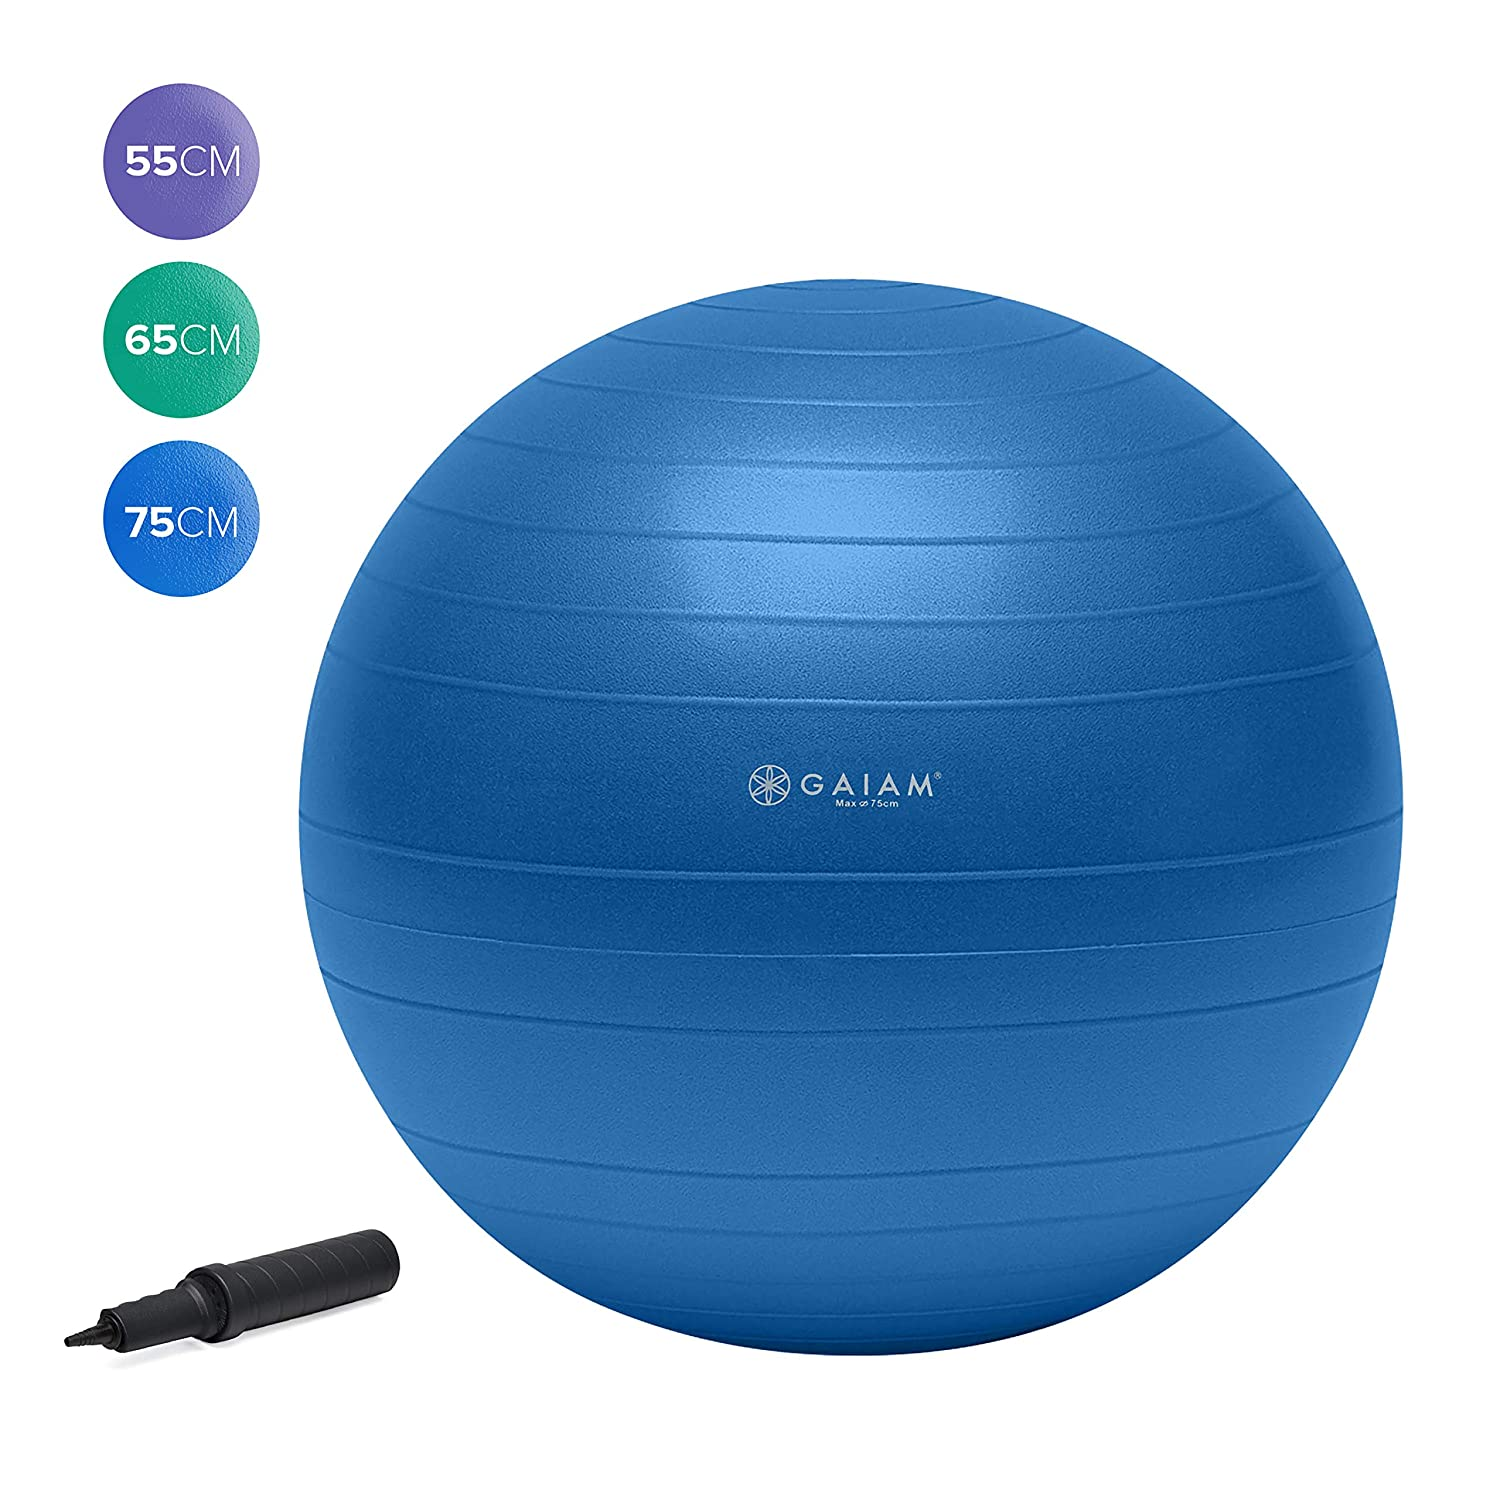 gaiam 52205 Balance Ball Kit, Yoga, Azul, 75 cm: Total Body ...